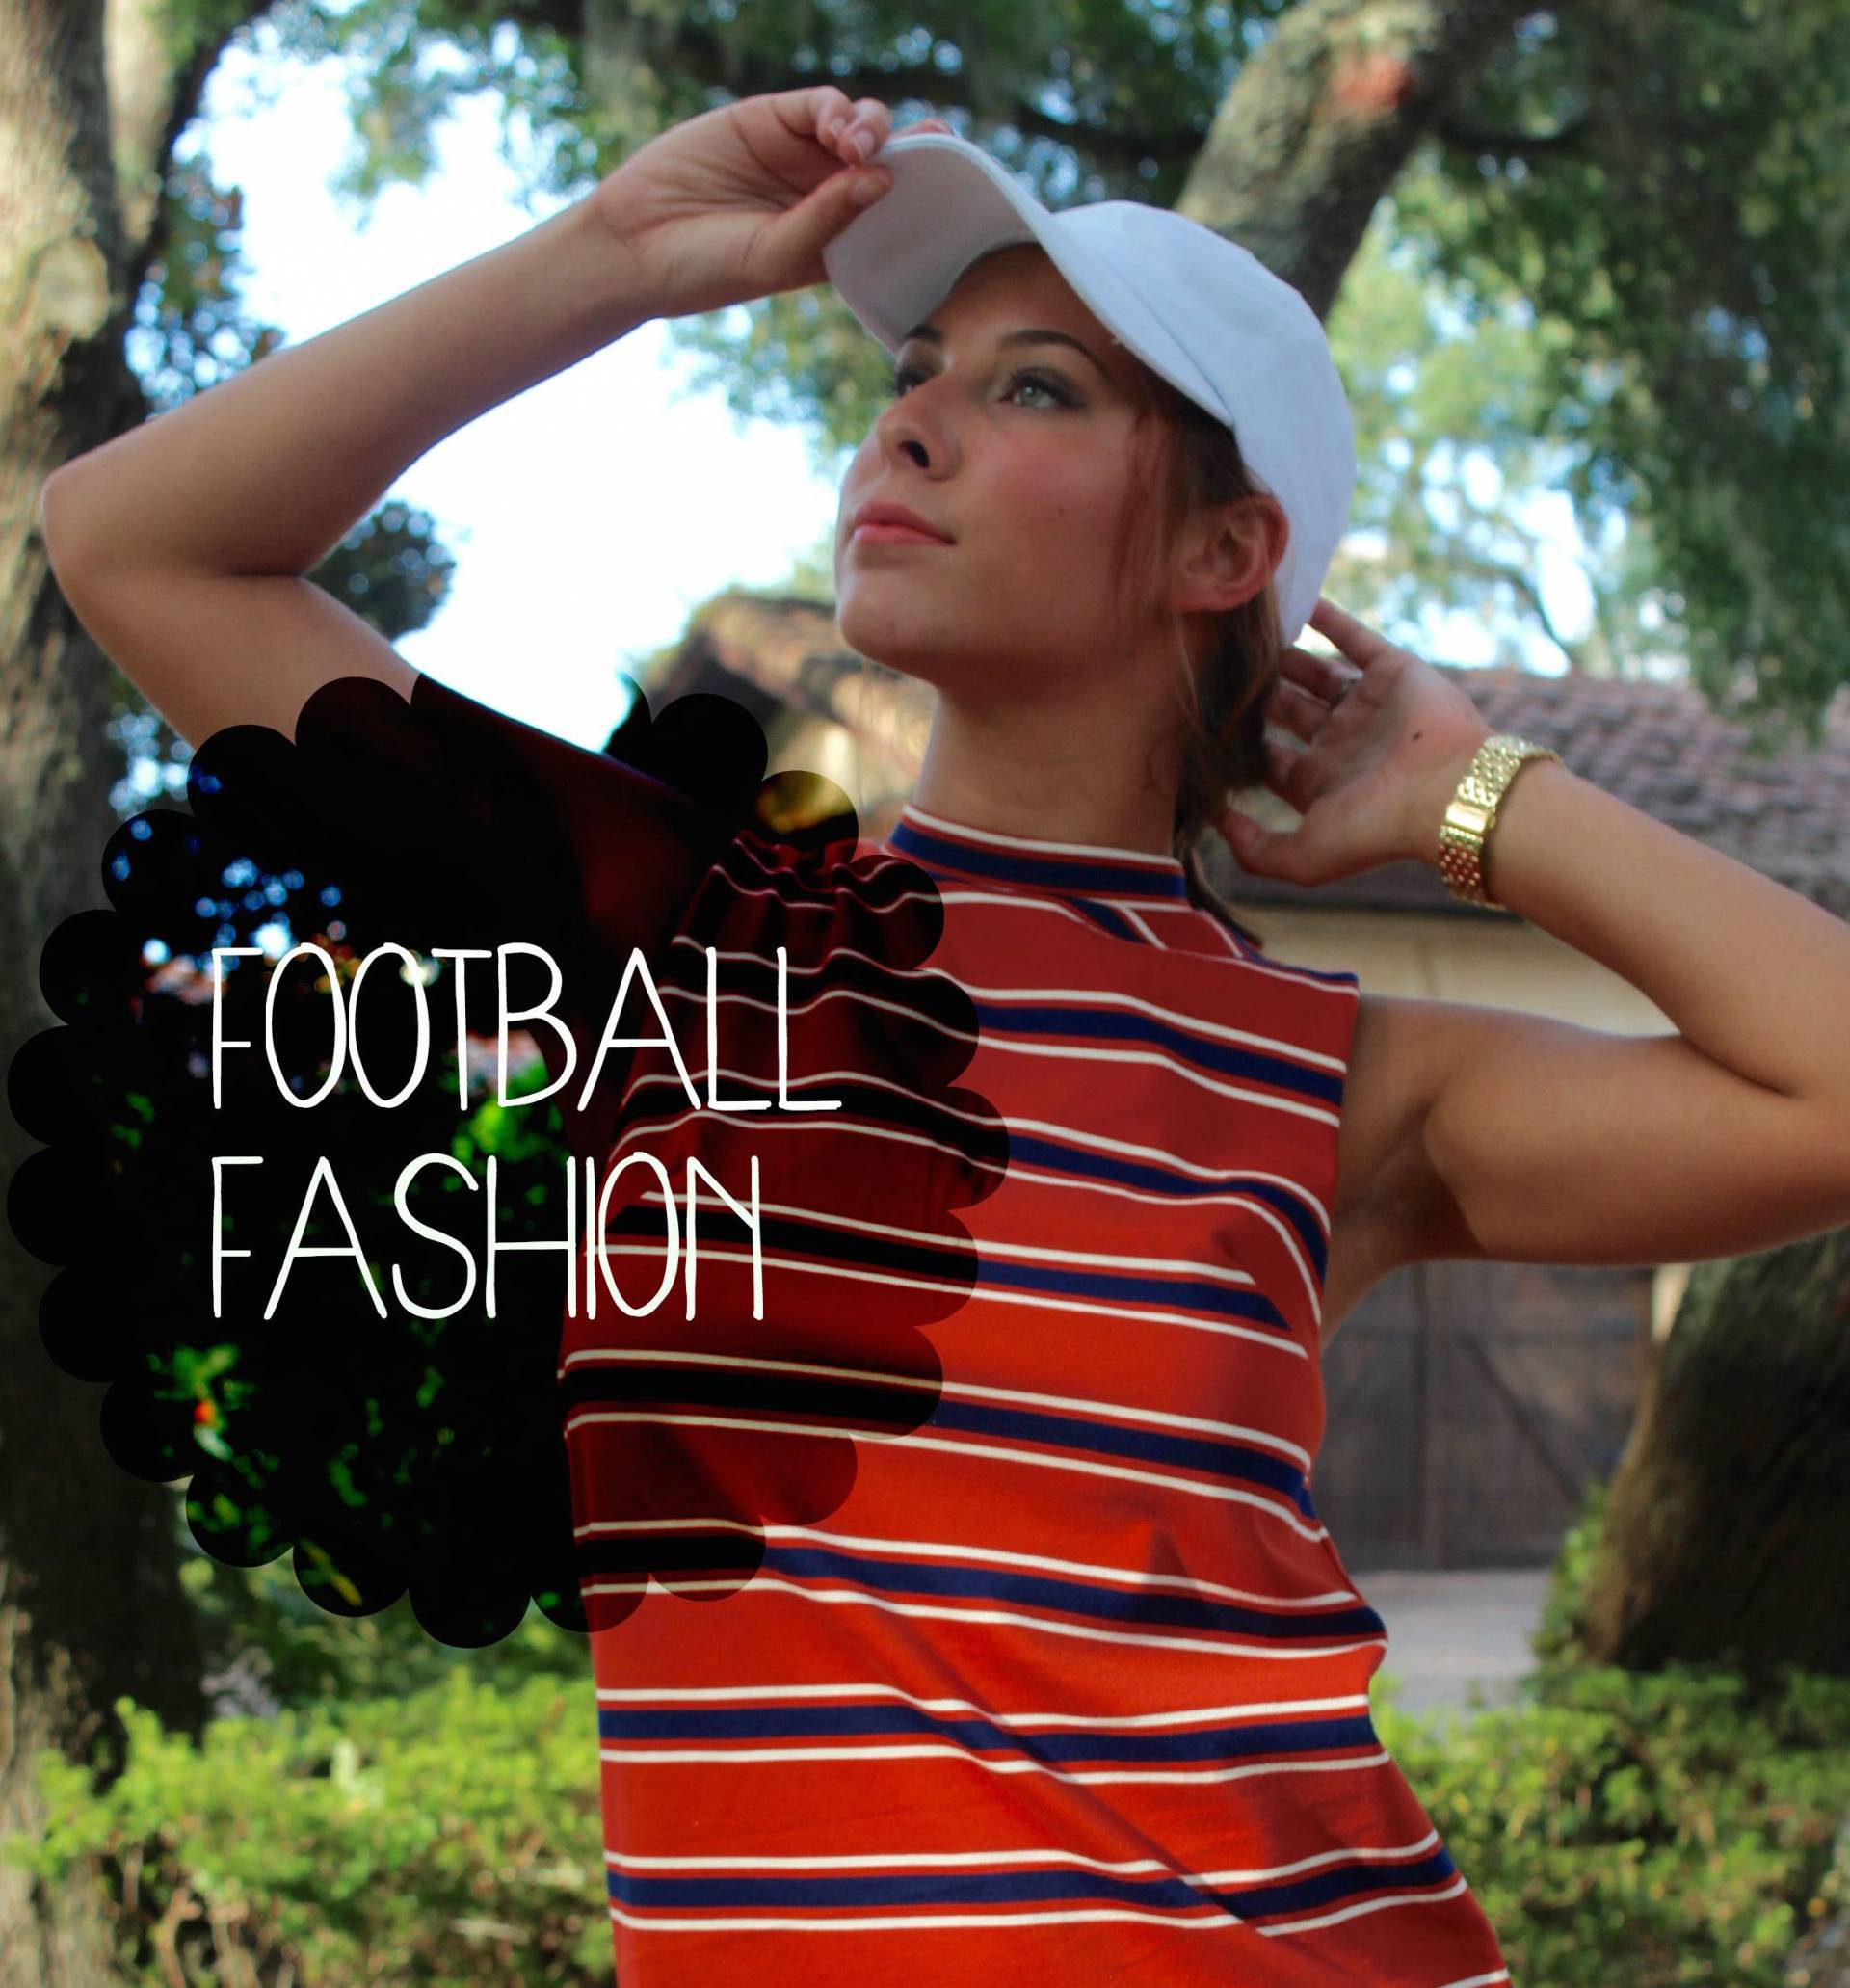 footballfashion1.jpg